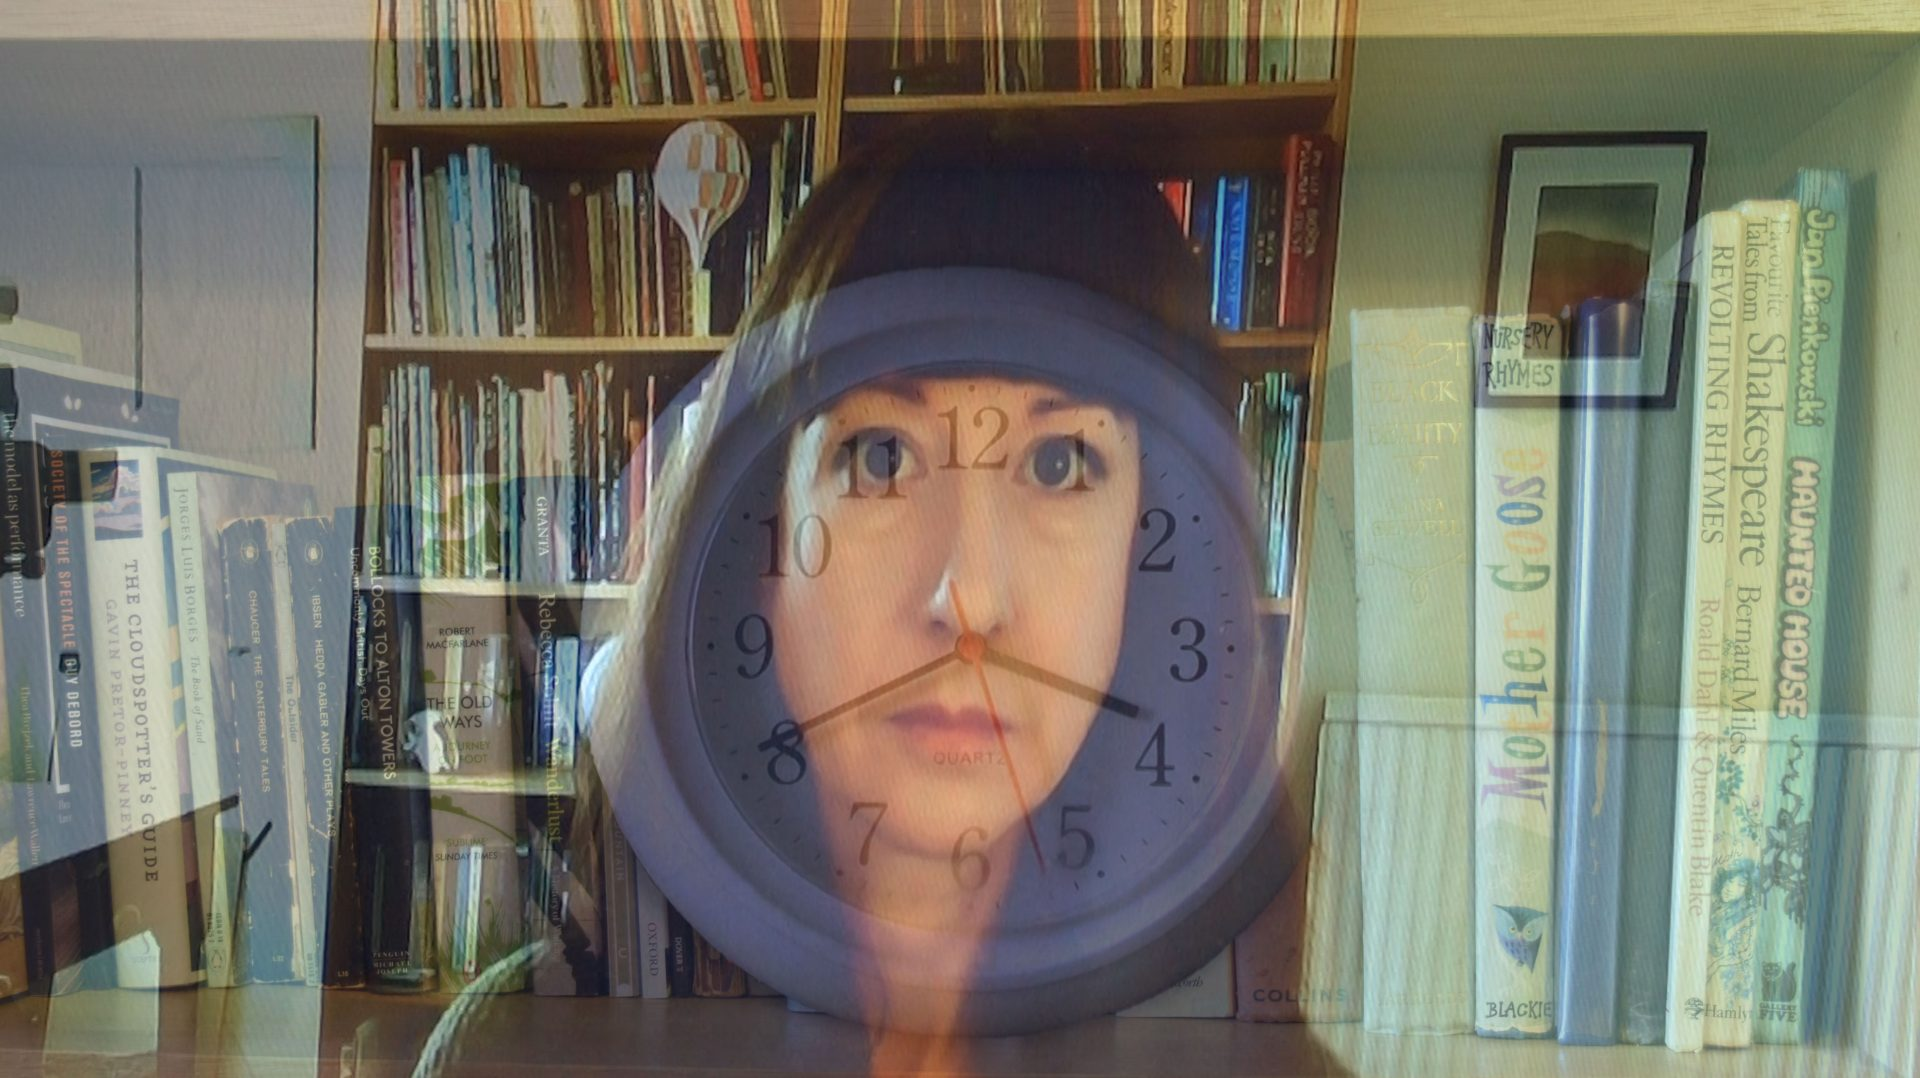 A background of a bookshelf in front of which is a woman's face with a clock face superimposed.